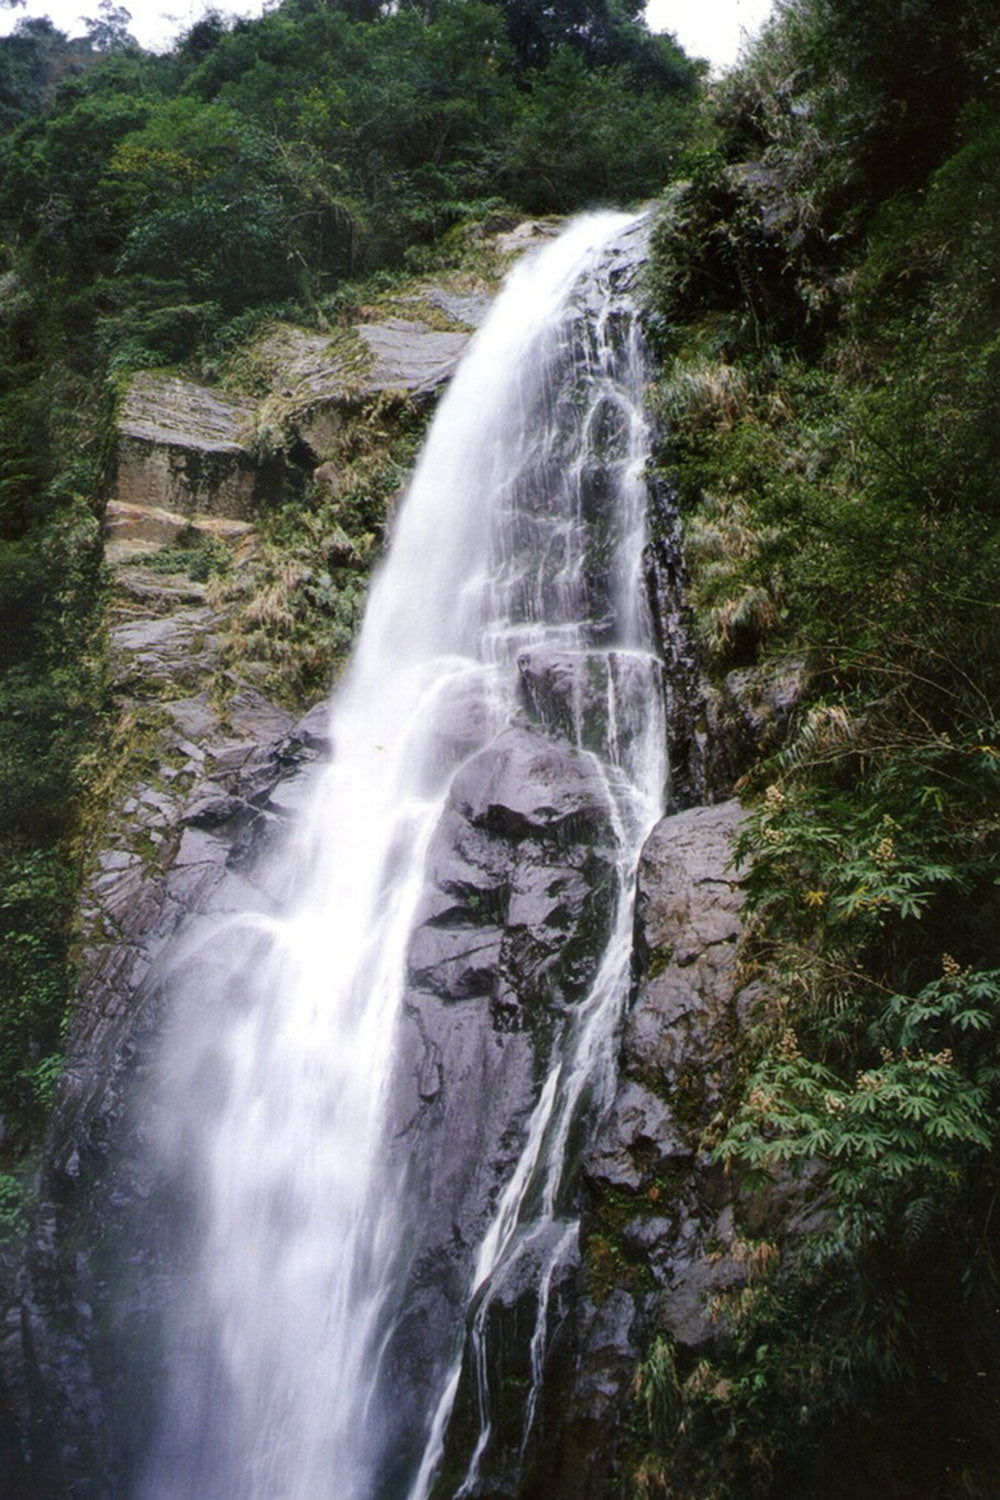 Maliguang Waterfall (馬里光瀑布), Yulao